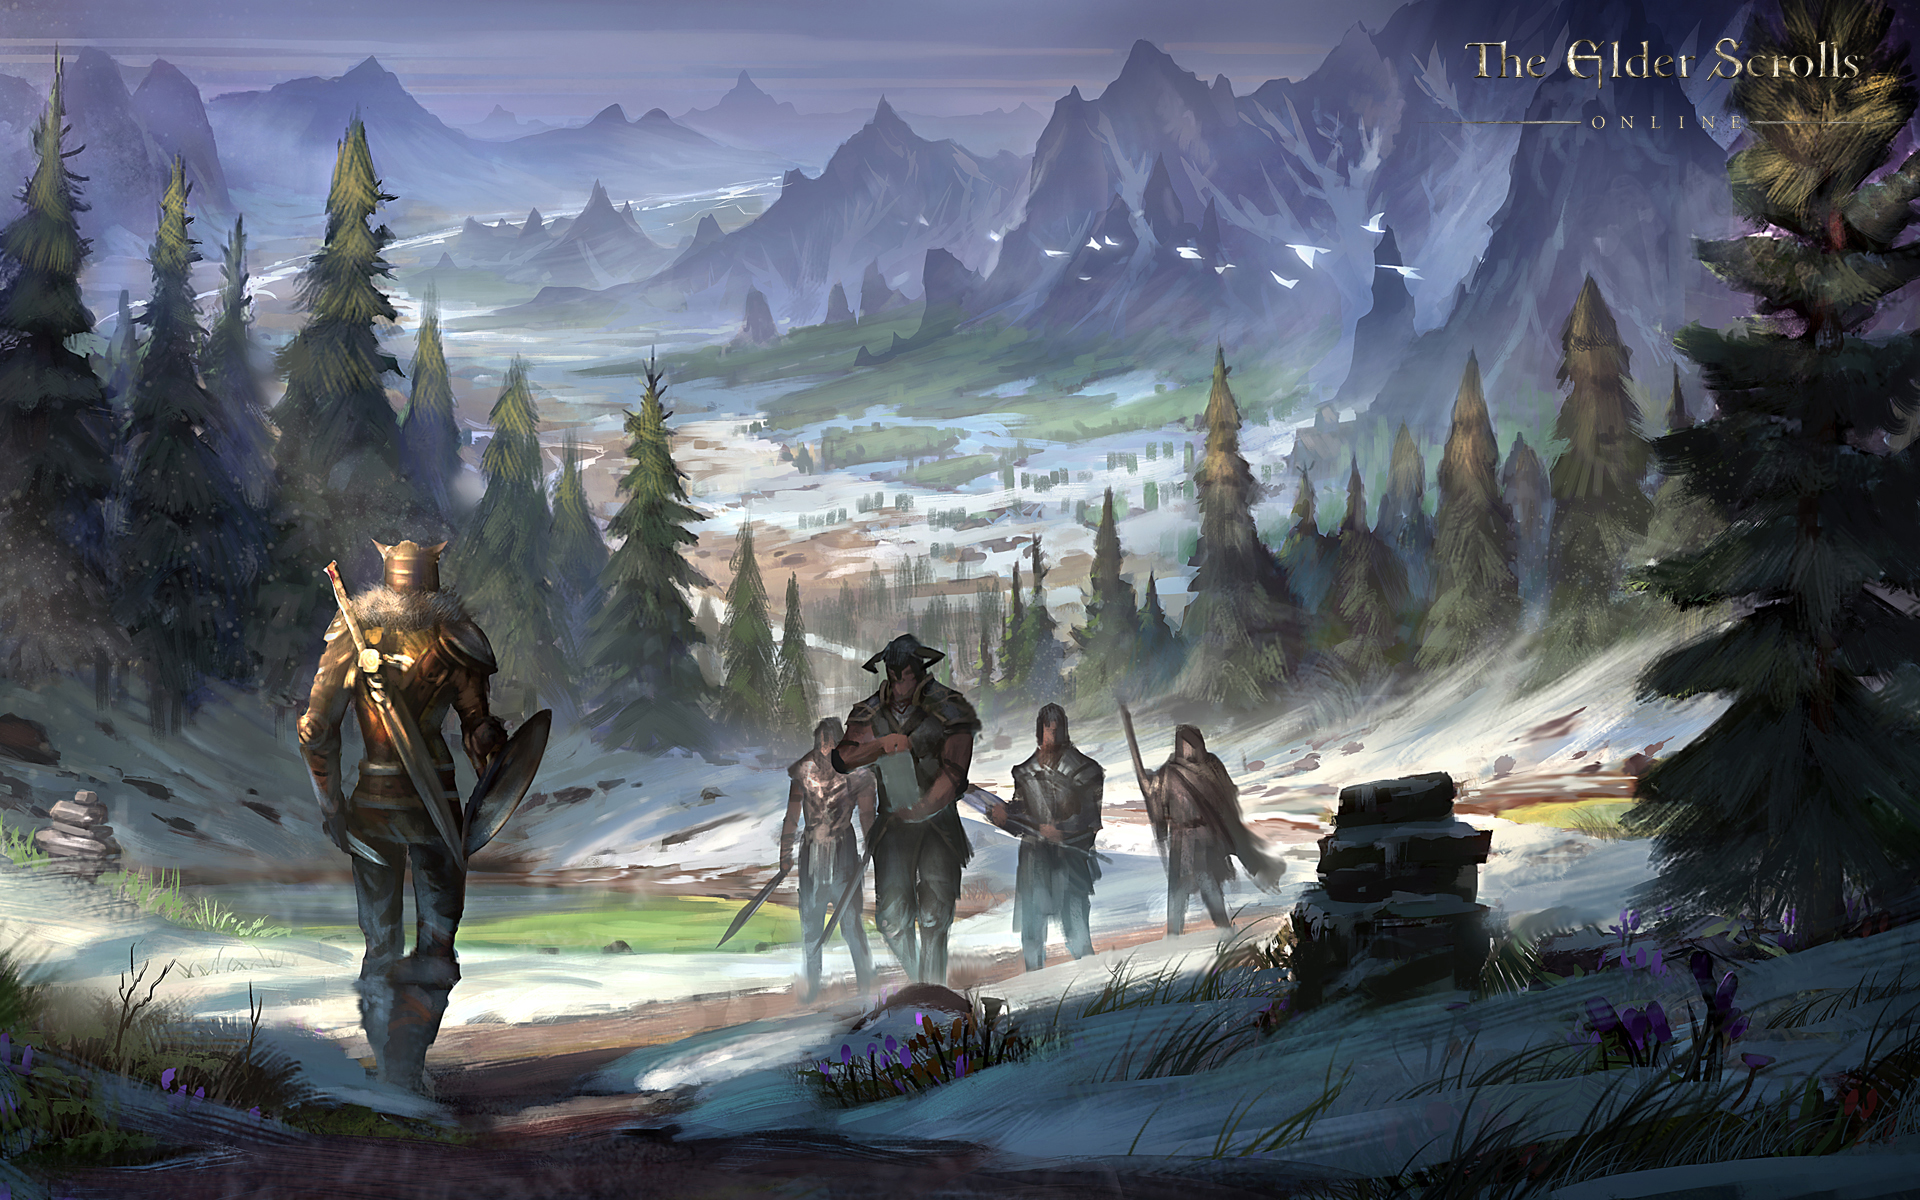 The Elder Scrolls Online Wallpaper Concept Art Concept Art World